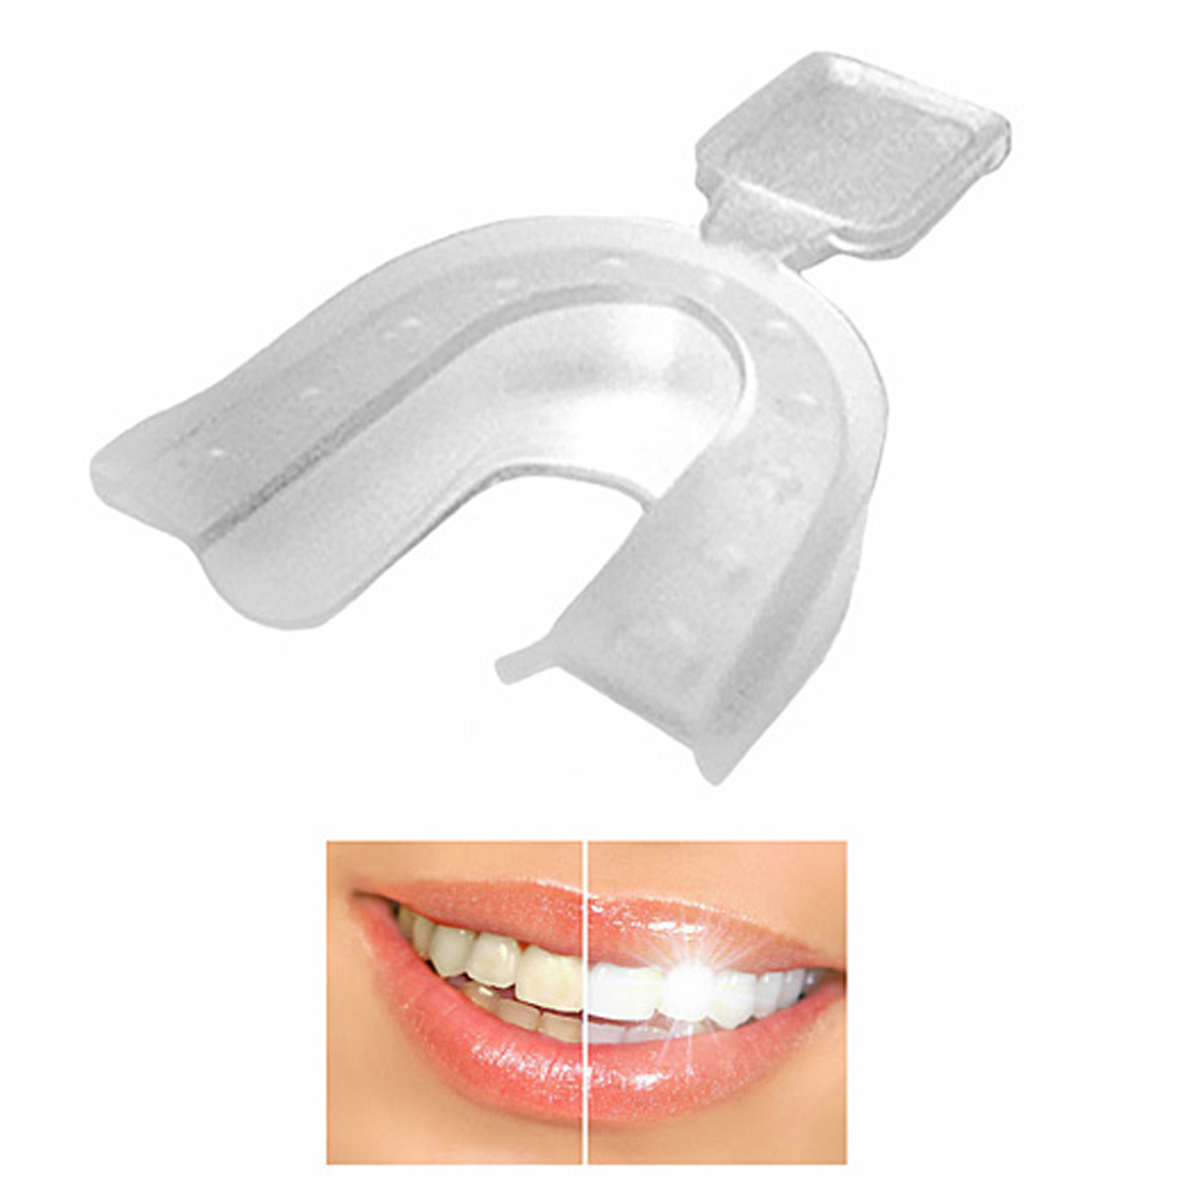 teeth whitening gel instructions